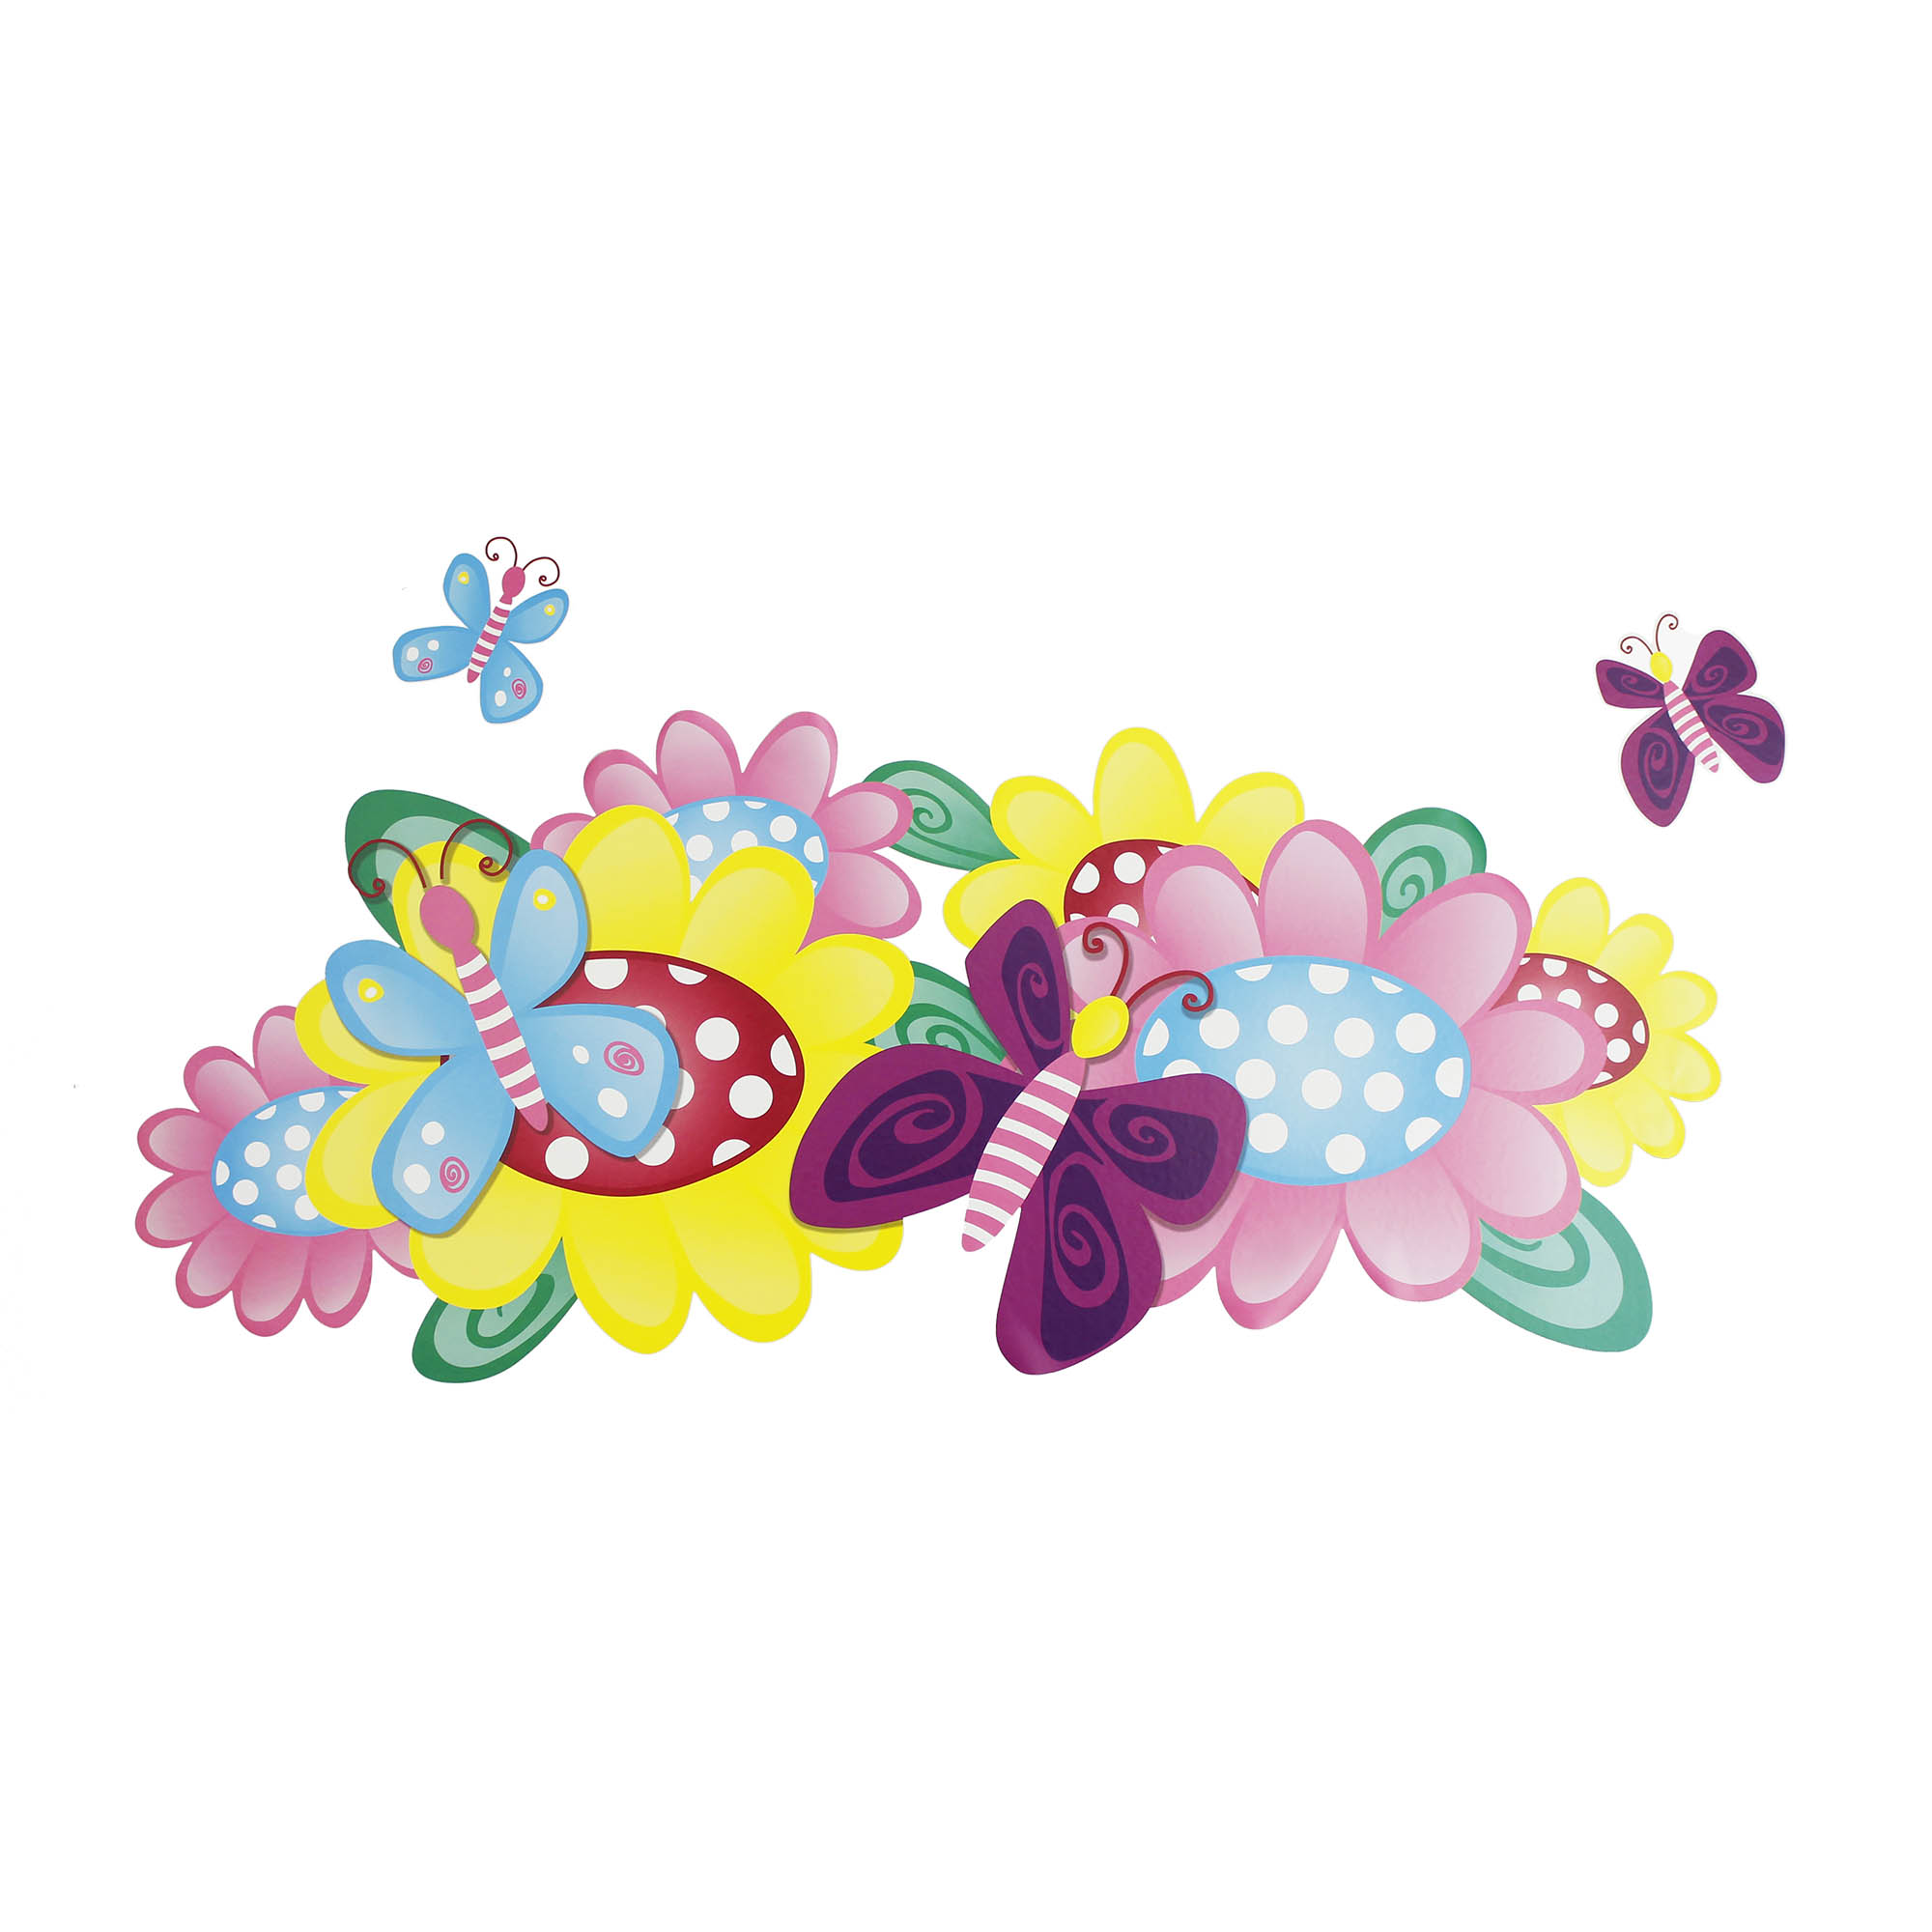 Butterfly and Flowers - 3pc Large Wall Accent Stickers Kit